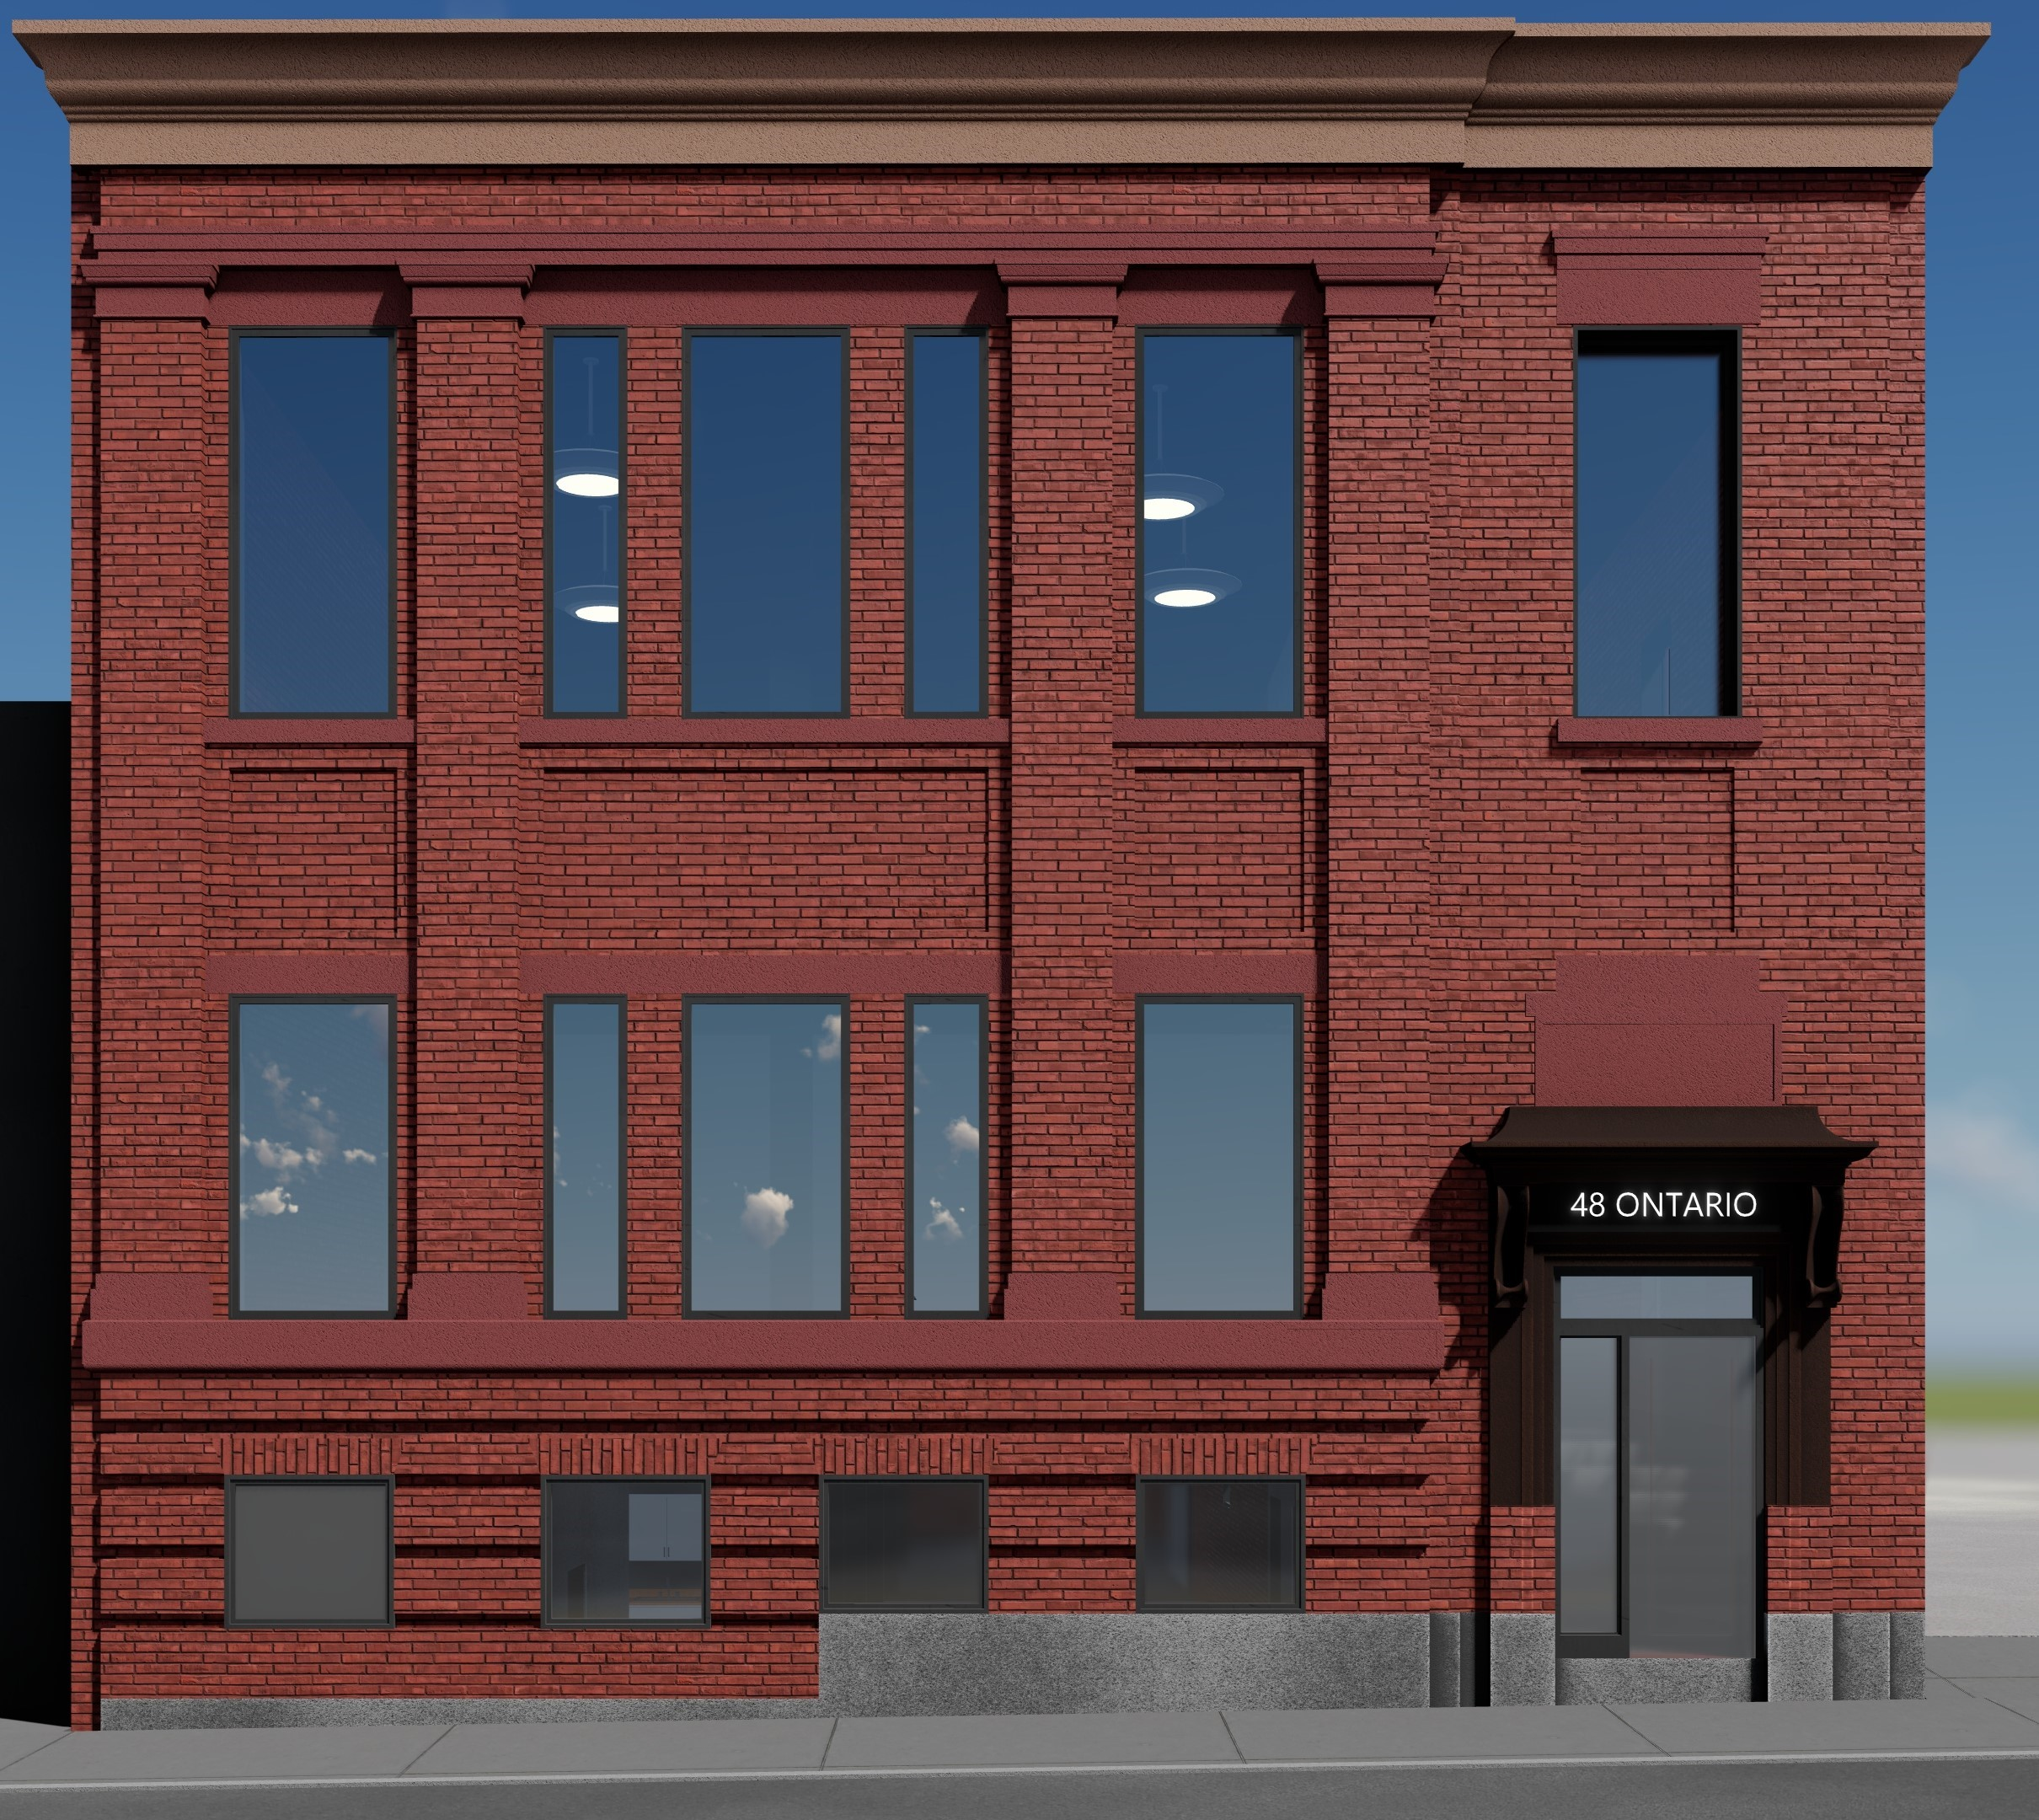 48 Ontario Street N, Kitchener | Renovated Class A Office Space for Lease